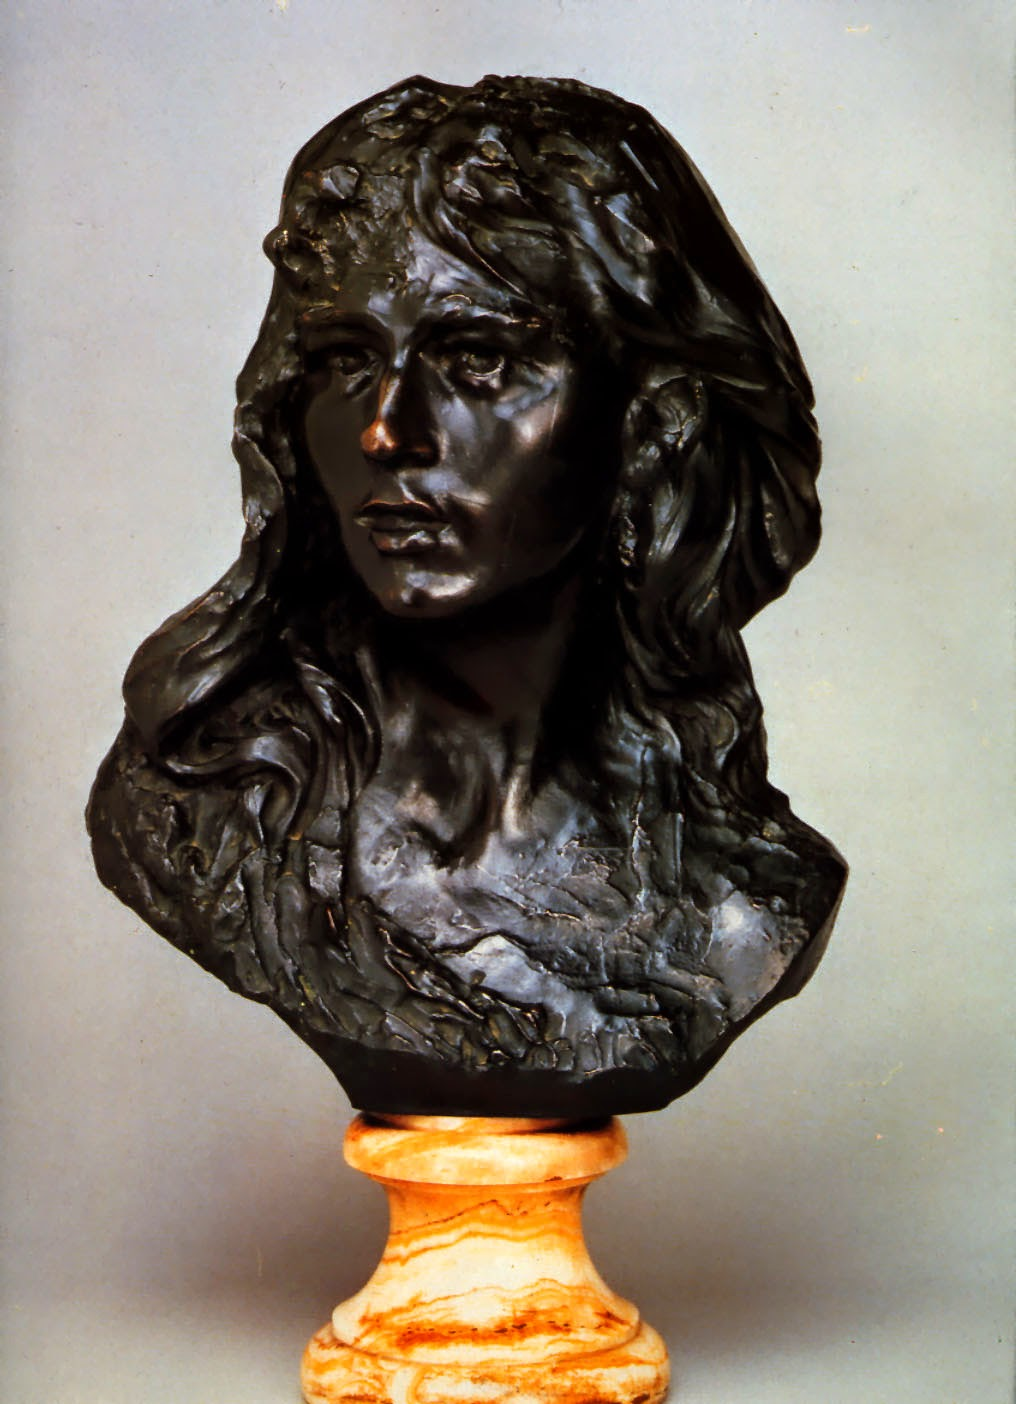 http://uploads8.wikiart.org/images/auguste-rodin/camille-claudel.jpg